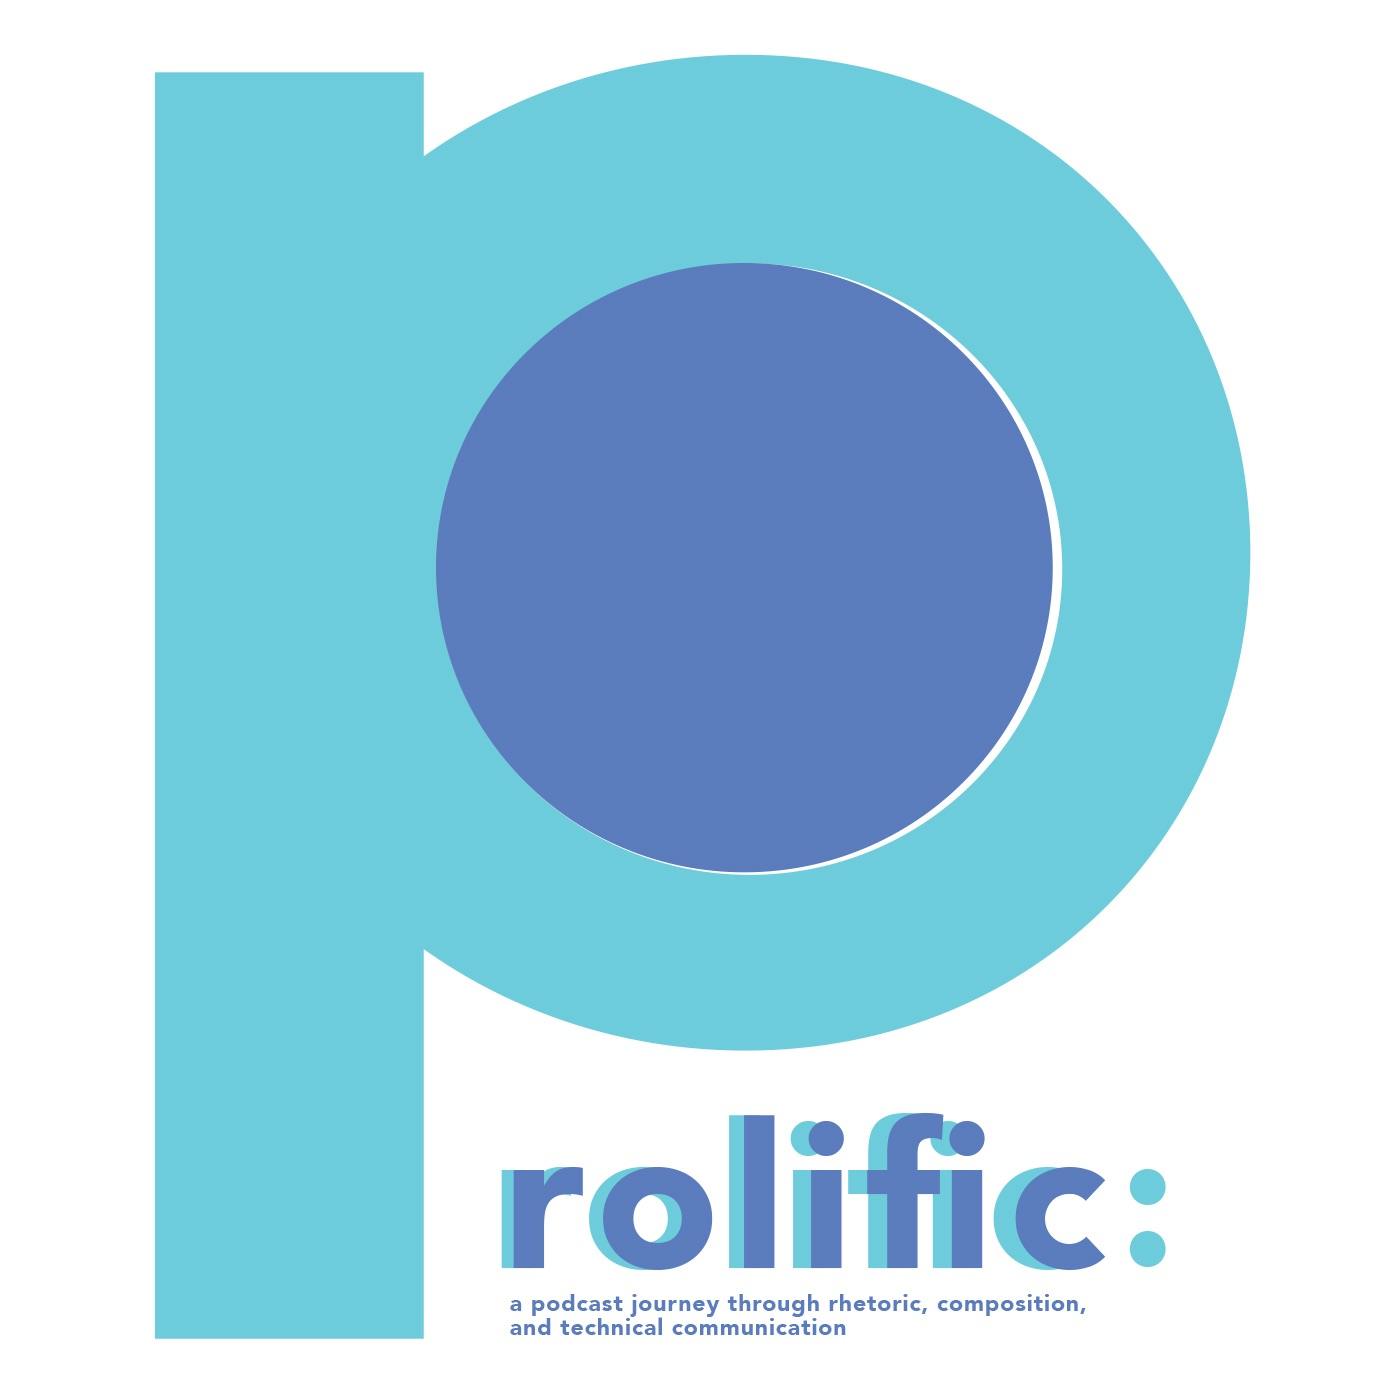 Prolific: a podcast journey through rhetoric, composition, and technical communication